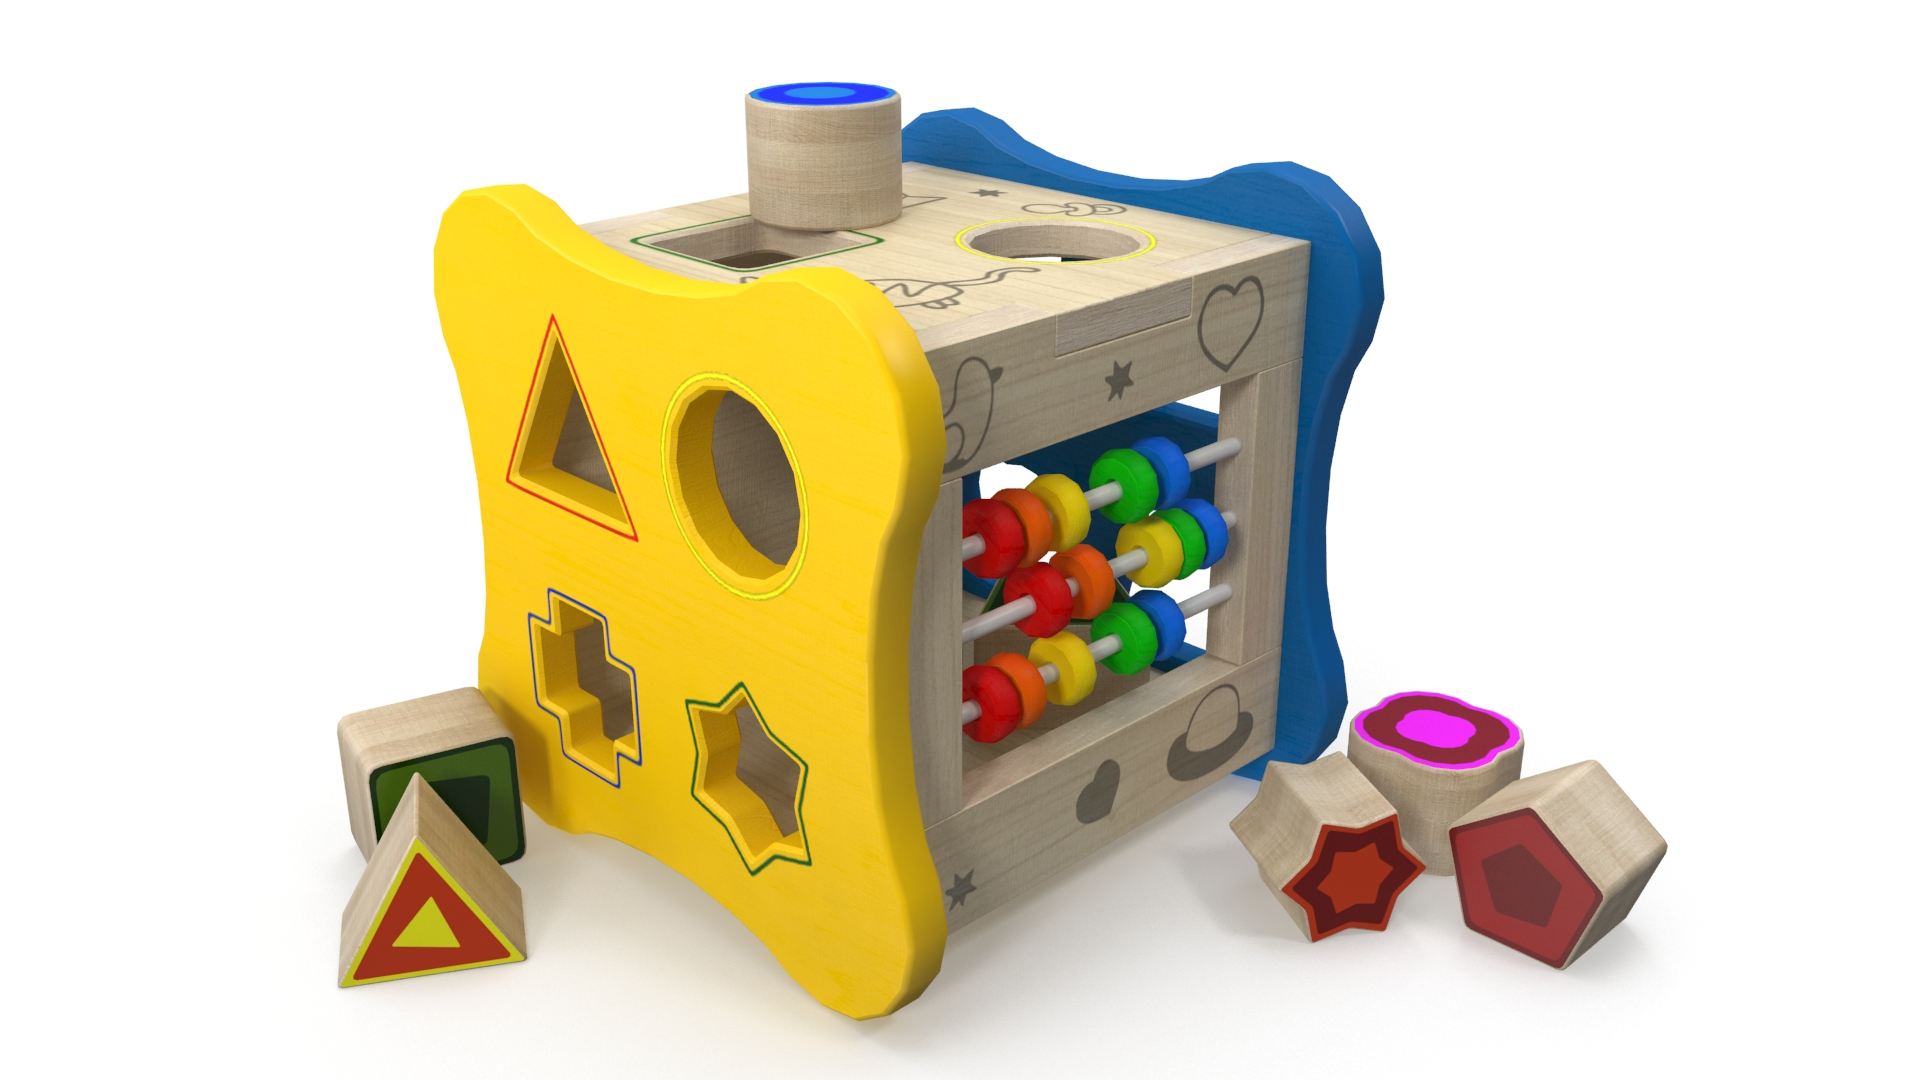 Children's puzzle 3d model 3ds max fbx c4d obj 269243